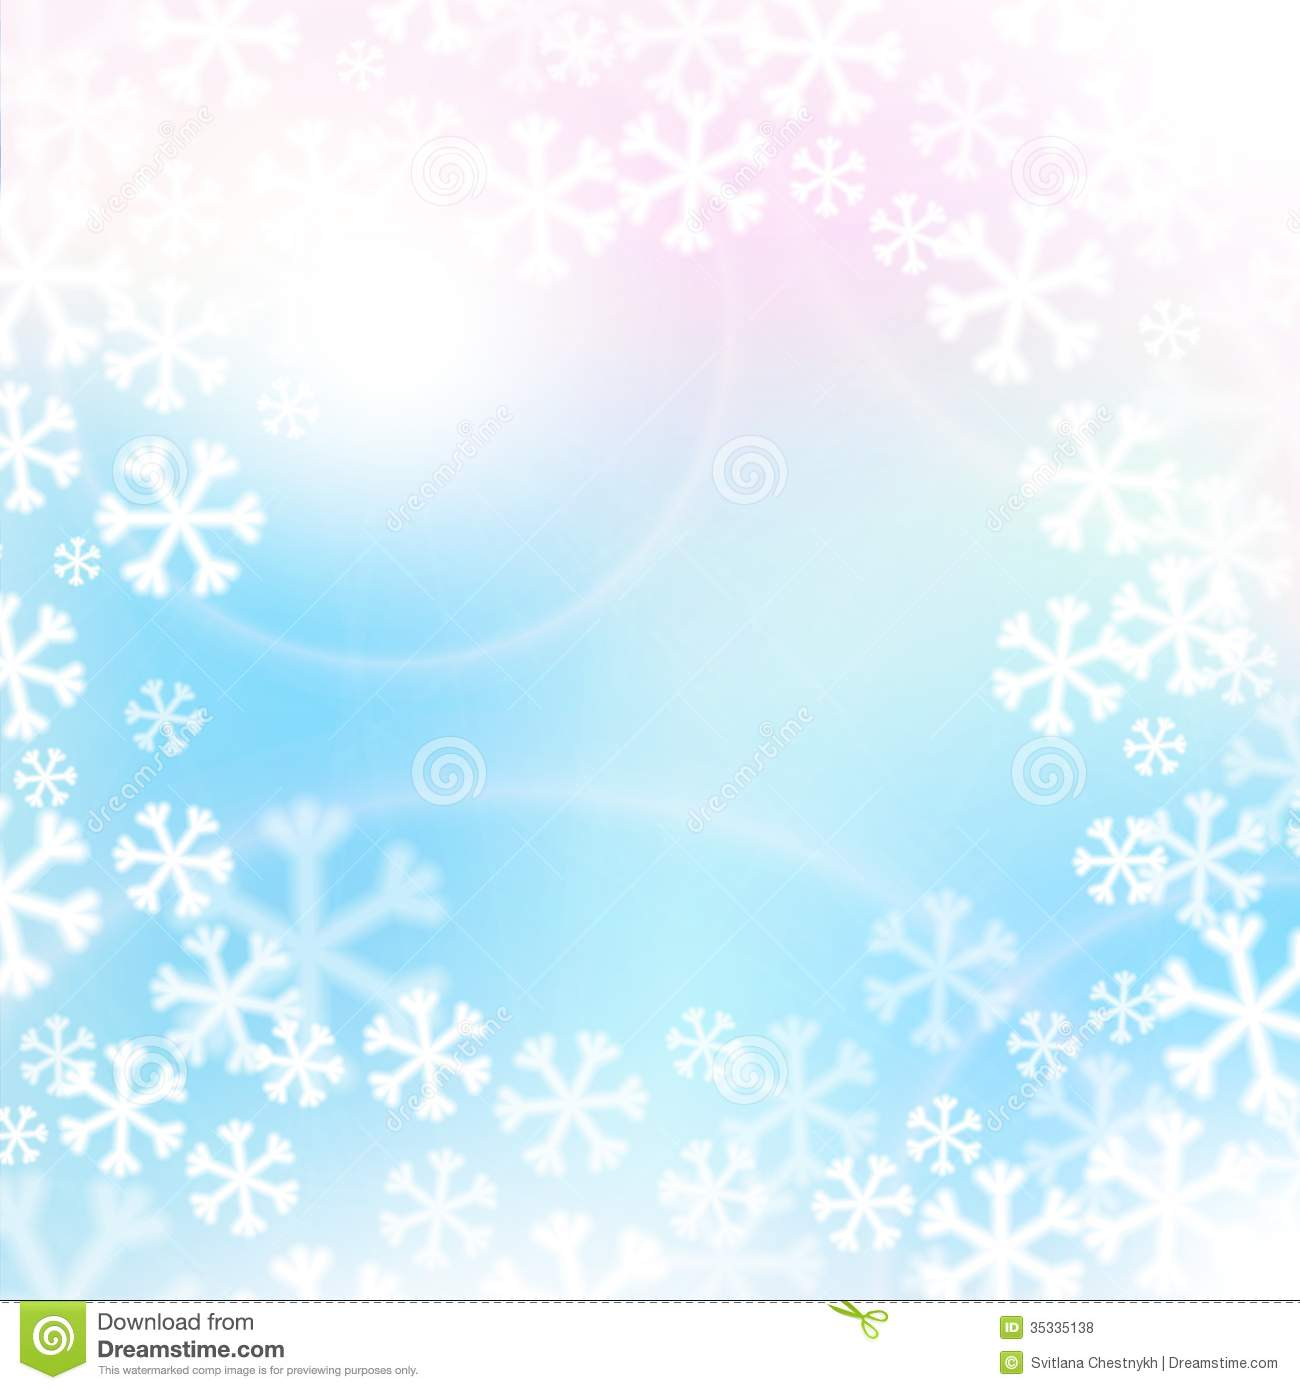 Christmas Background, Snowflakes And Soft Colors Royalty Free Stock ...